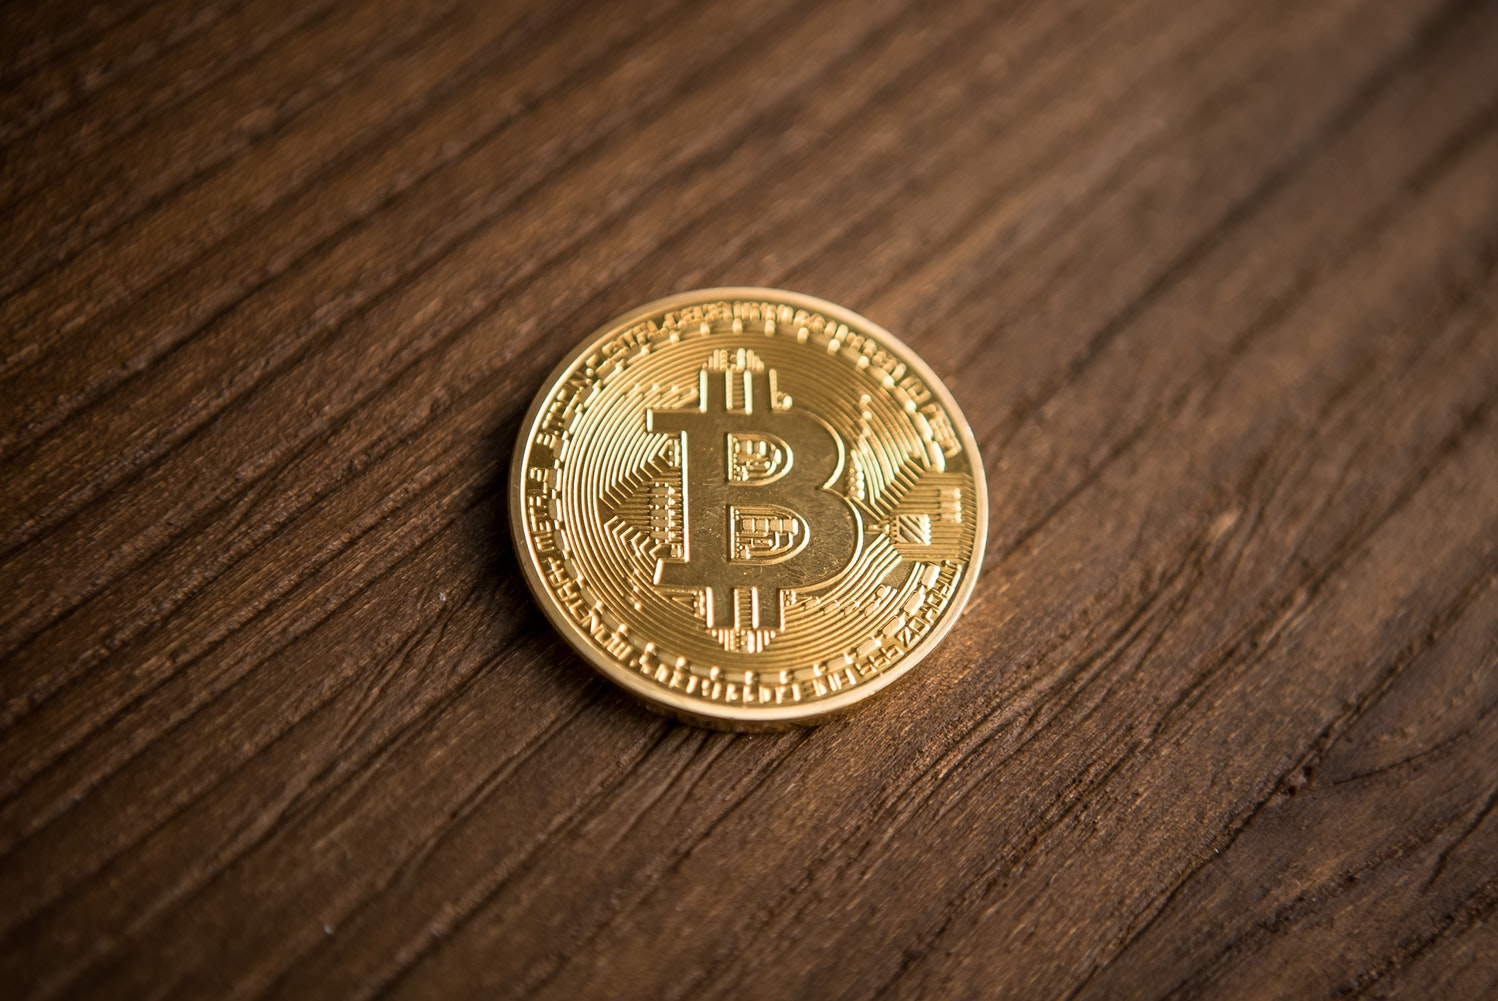 A coin with the symbol of Bitcoin. Bitcoin is a digital currency, so a physical form of it has no meaning.